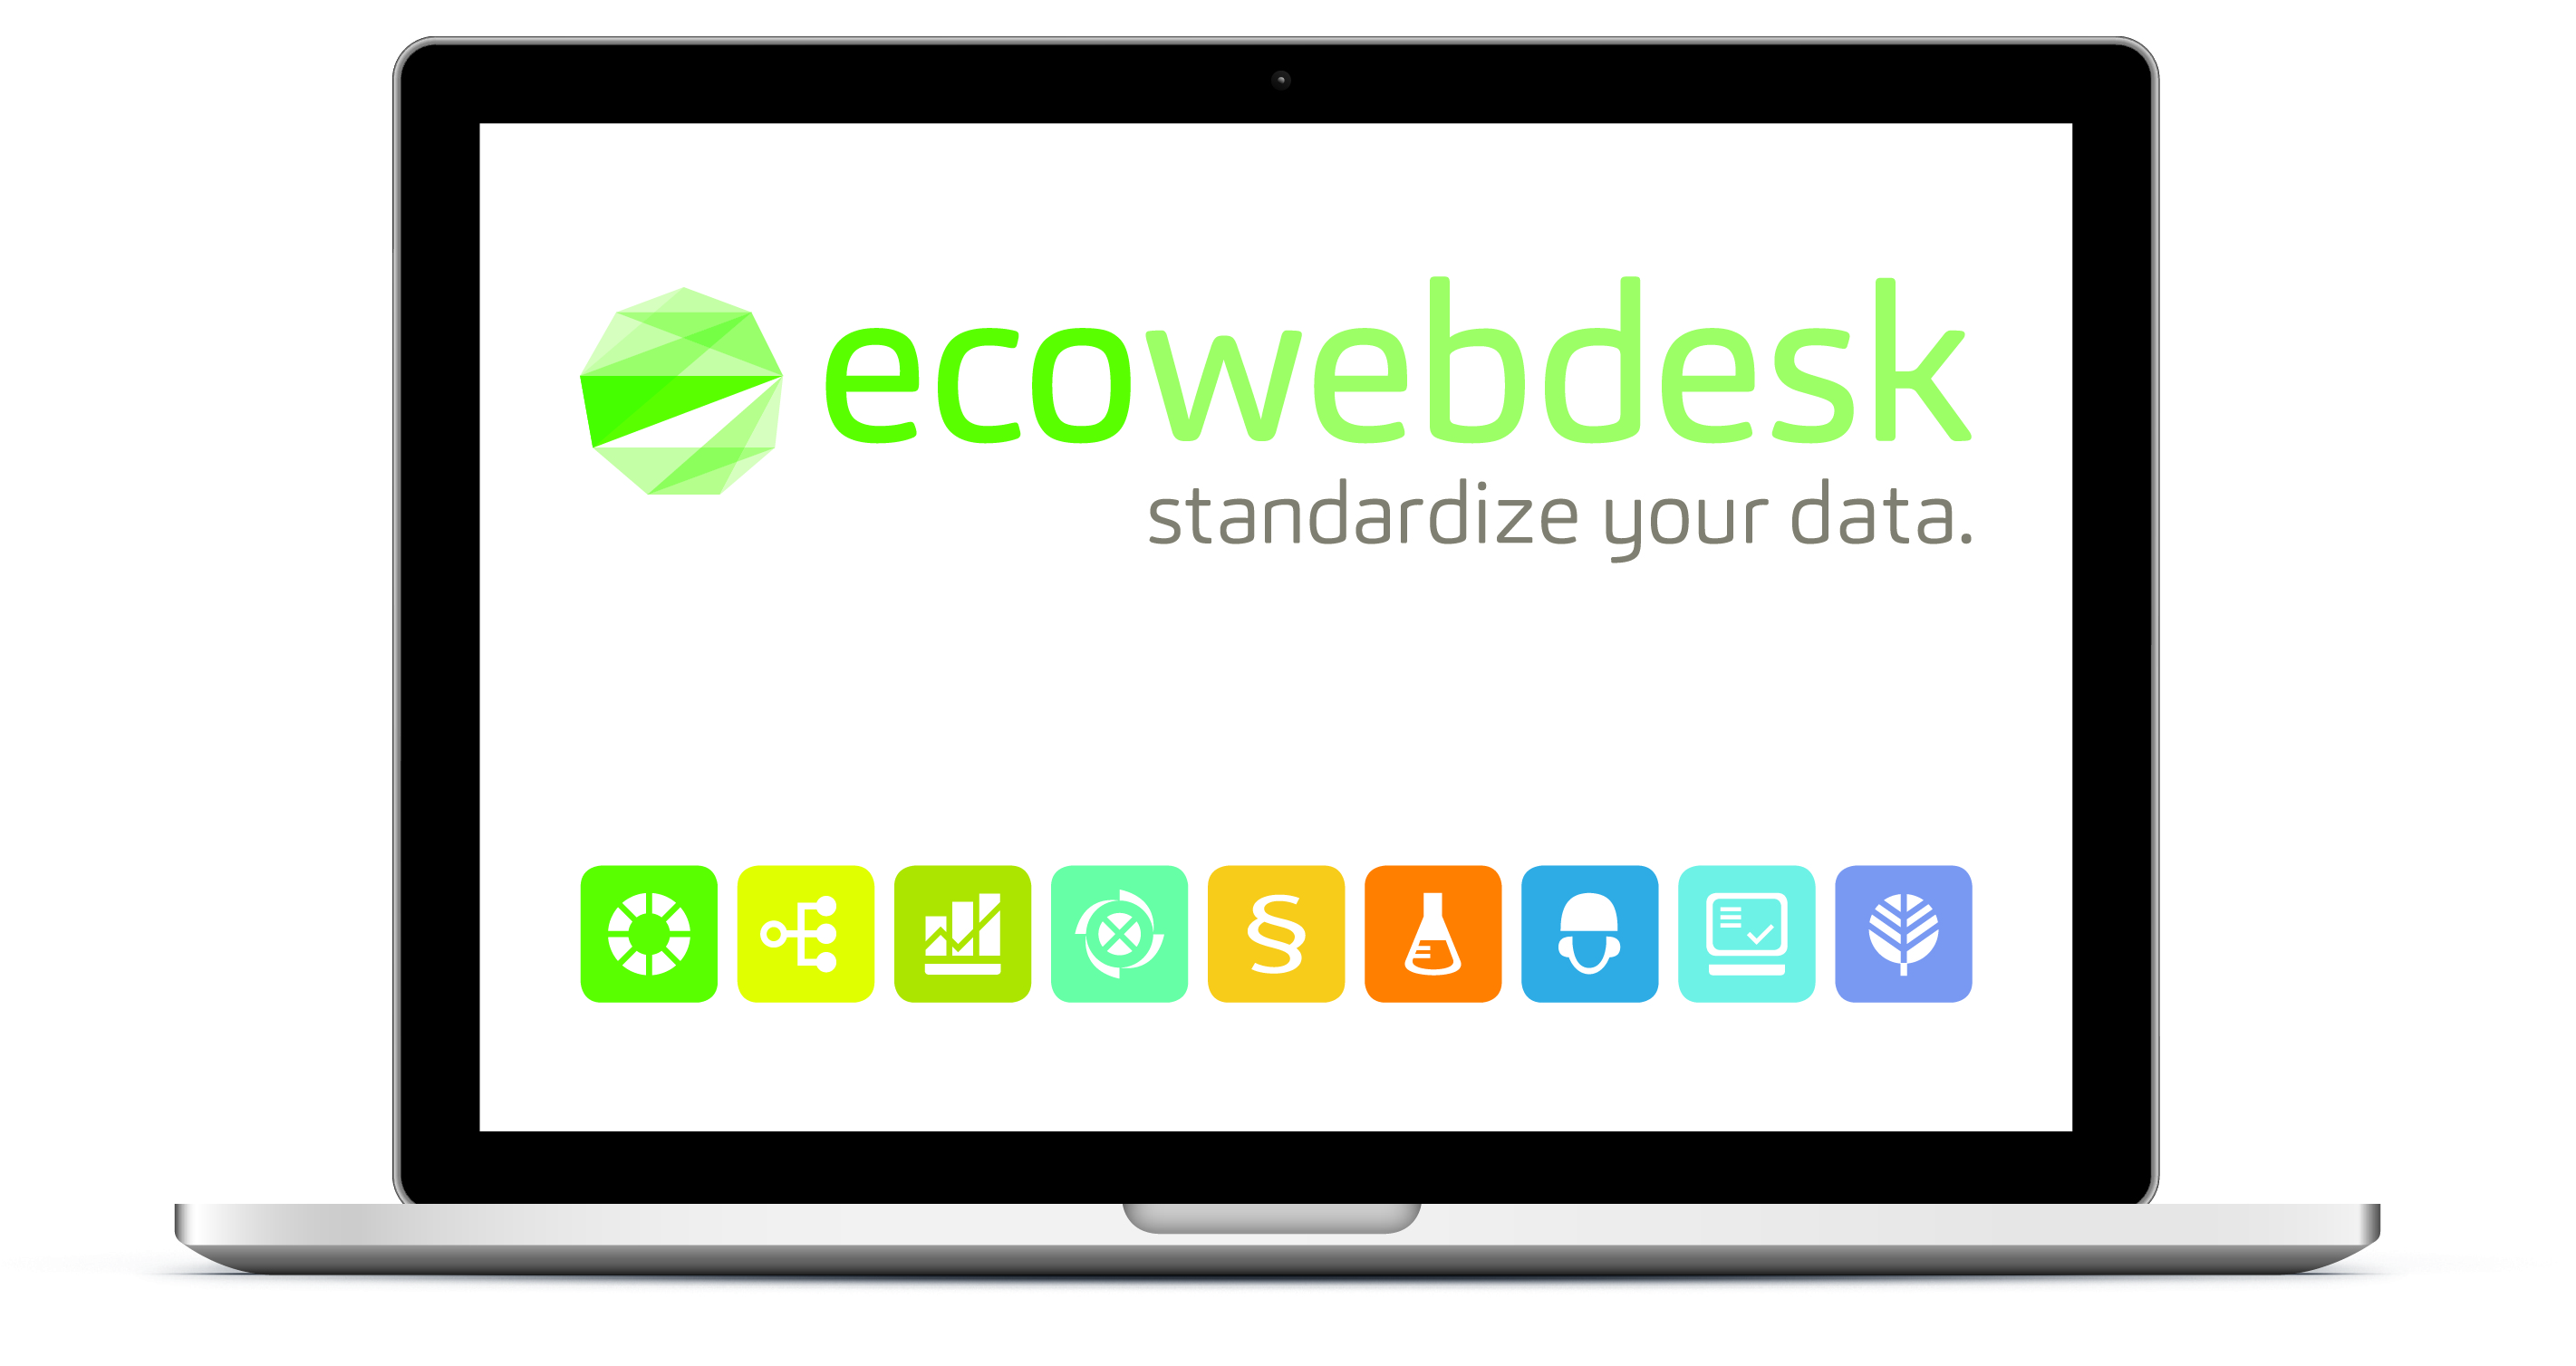 download picture ii ecowebdesk april 17 2018 jpg 118 mb - Gefahrdungsanalyse Muster